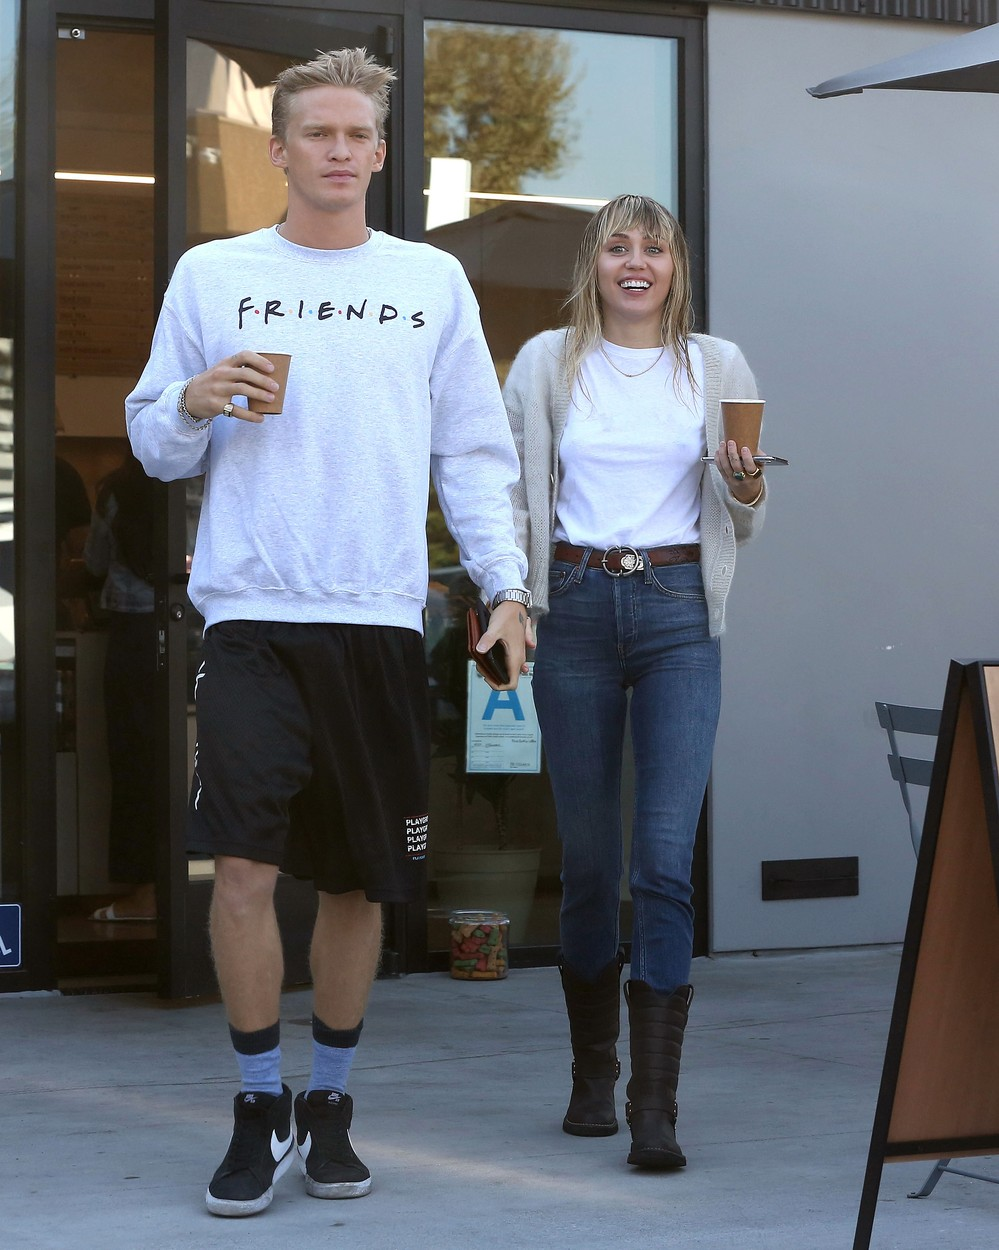 Miley Cyrus and Cody Simpson seen grabbing a iced coffee together in Studio City. 13 Oct 2019, Image: 476518072, License: Rights-managed, Restrictions: World Rights, Model Release: no, Credit line: P&P / MEGA / Mega Agency / Profimedia